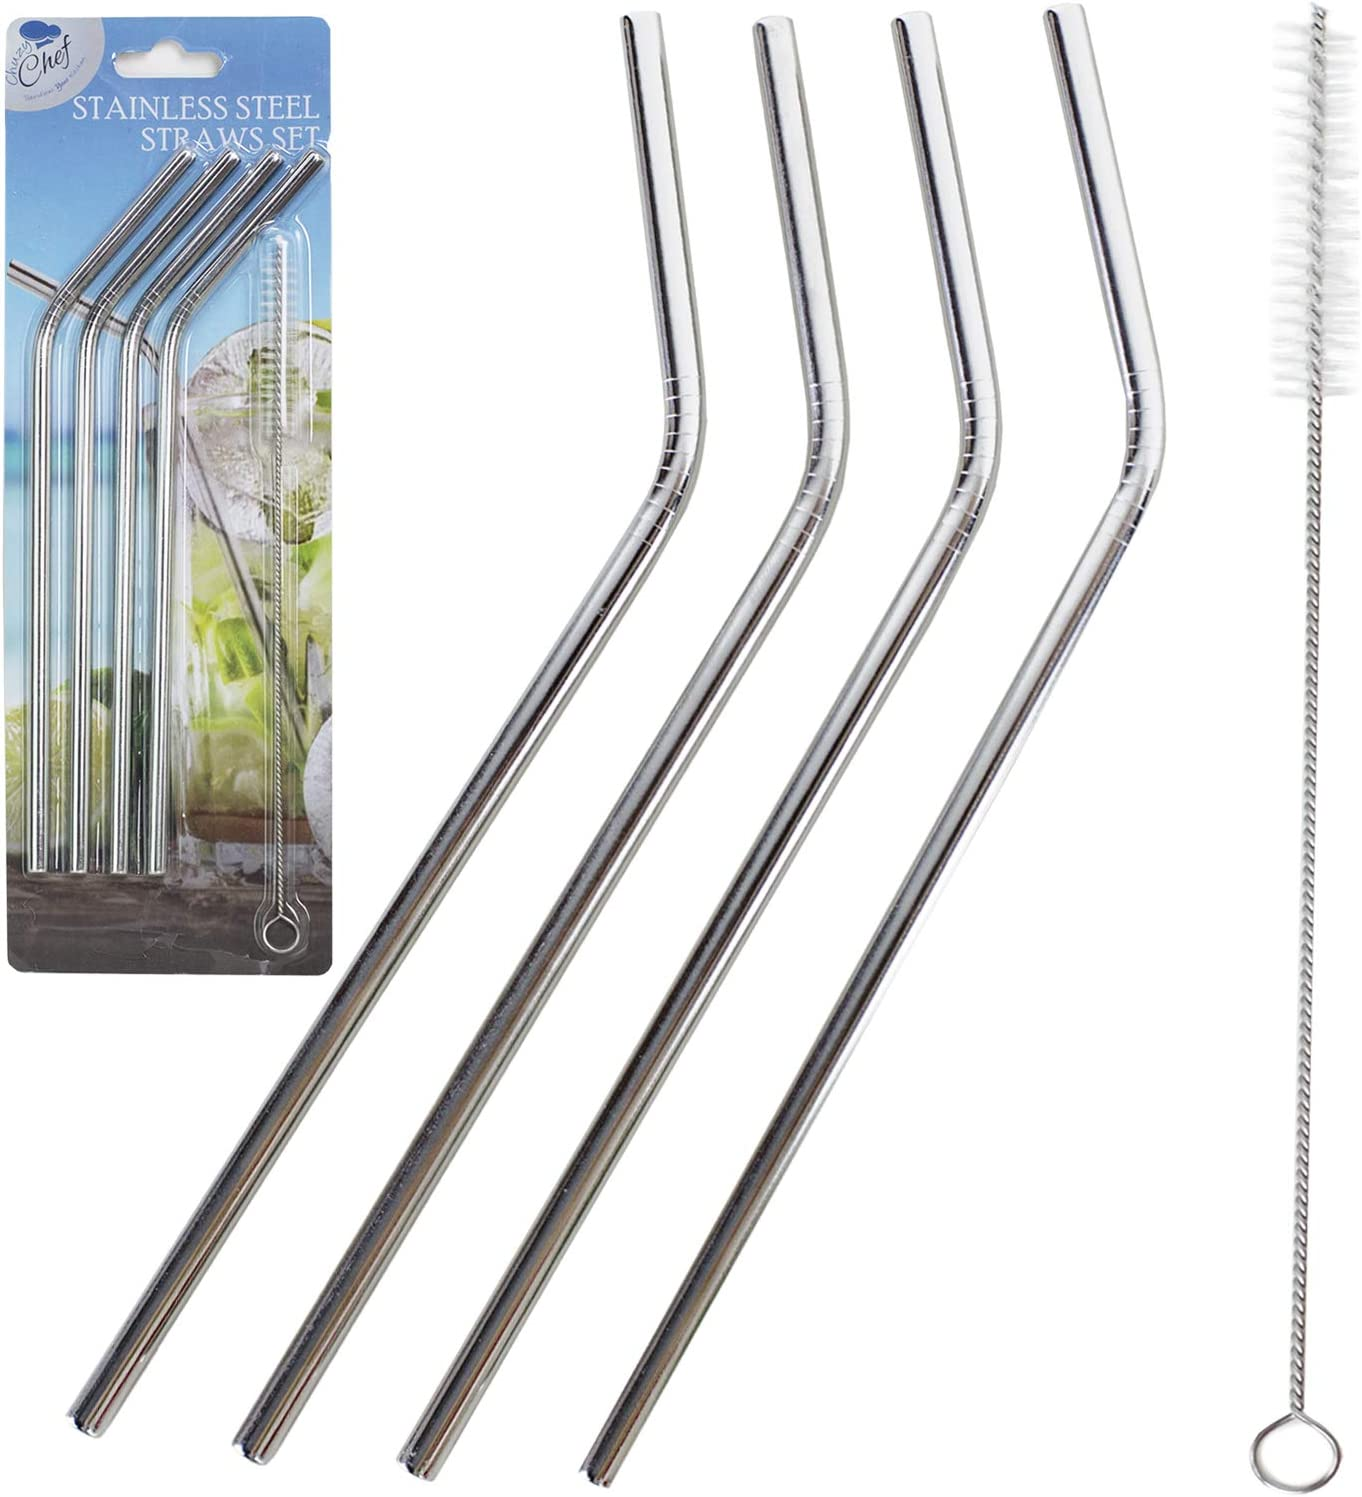 Stainless Steel Straws Set of 4 Free Cleaning Brush Included Strongest Metal Reusable Eco Friendly Drinking Straws by Chuzy Chef/®